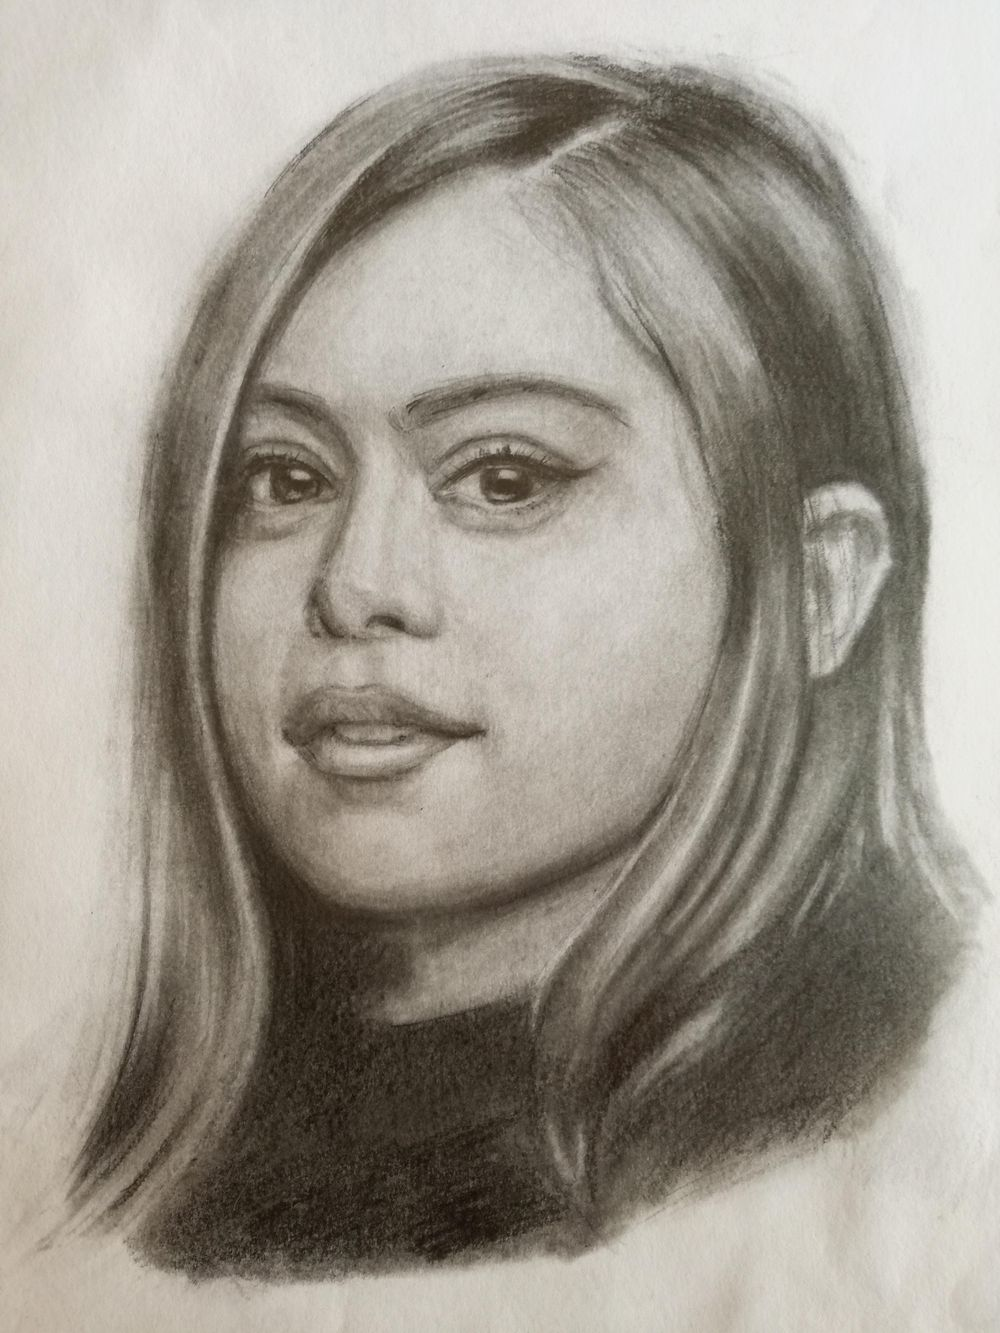 Pencil Drawing - NEW - image 2 - student project